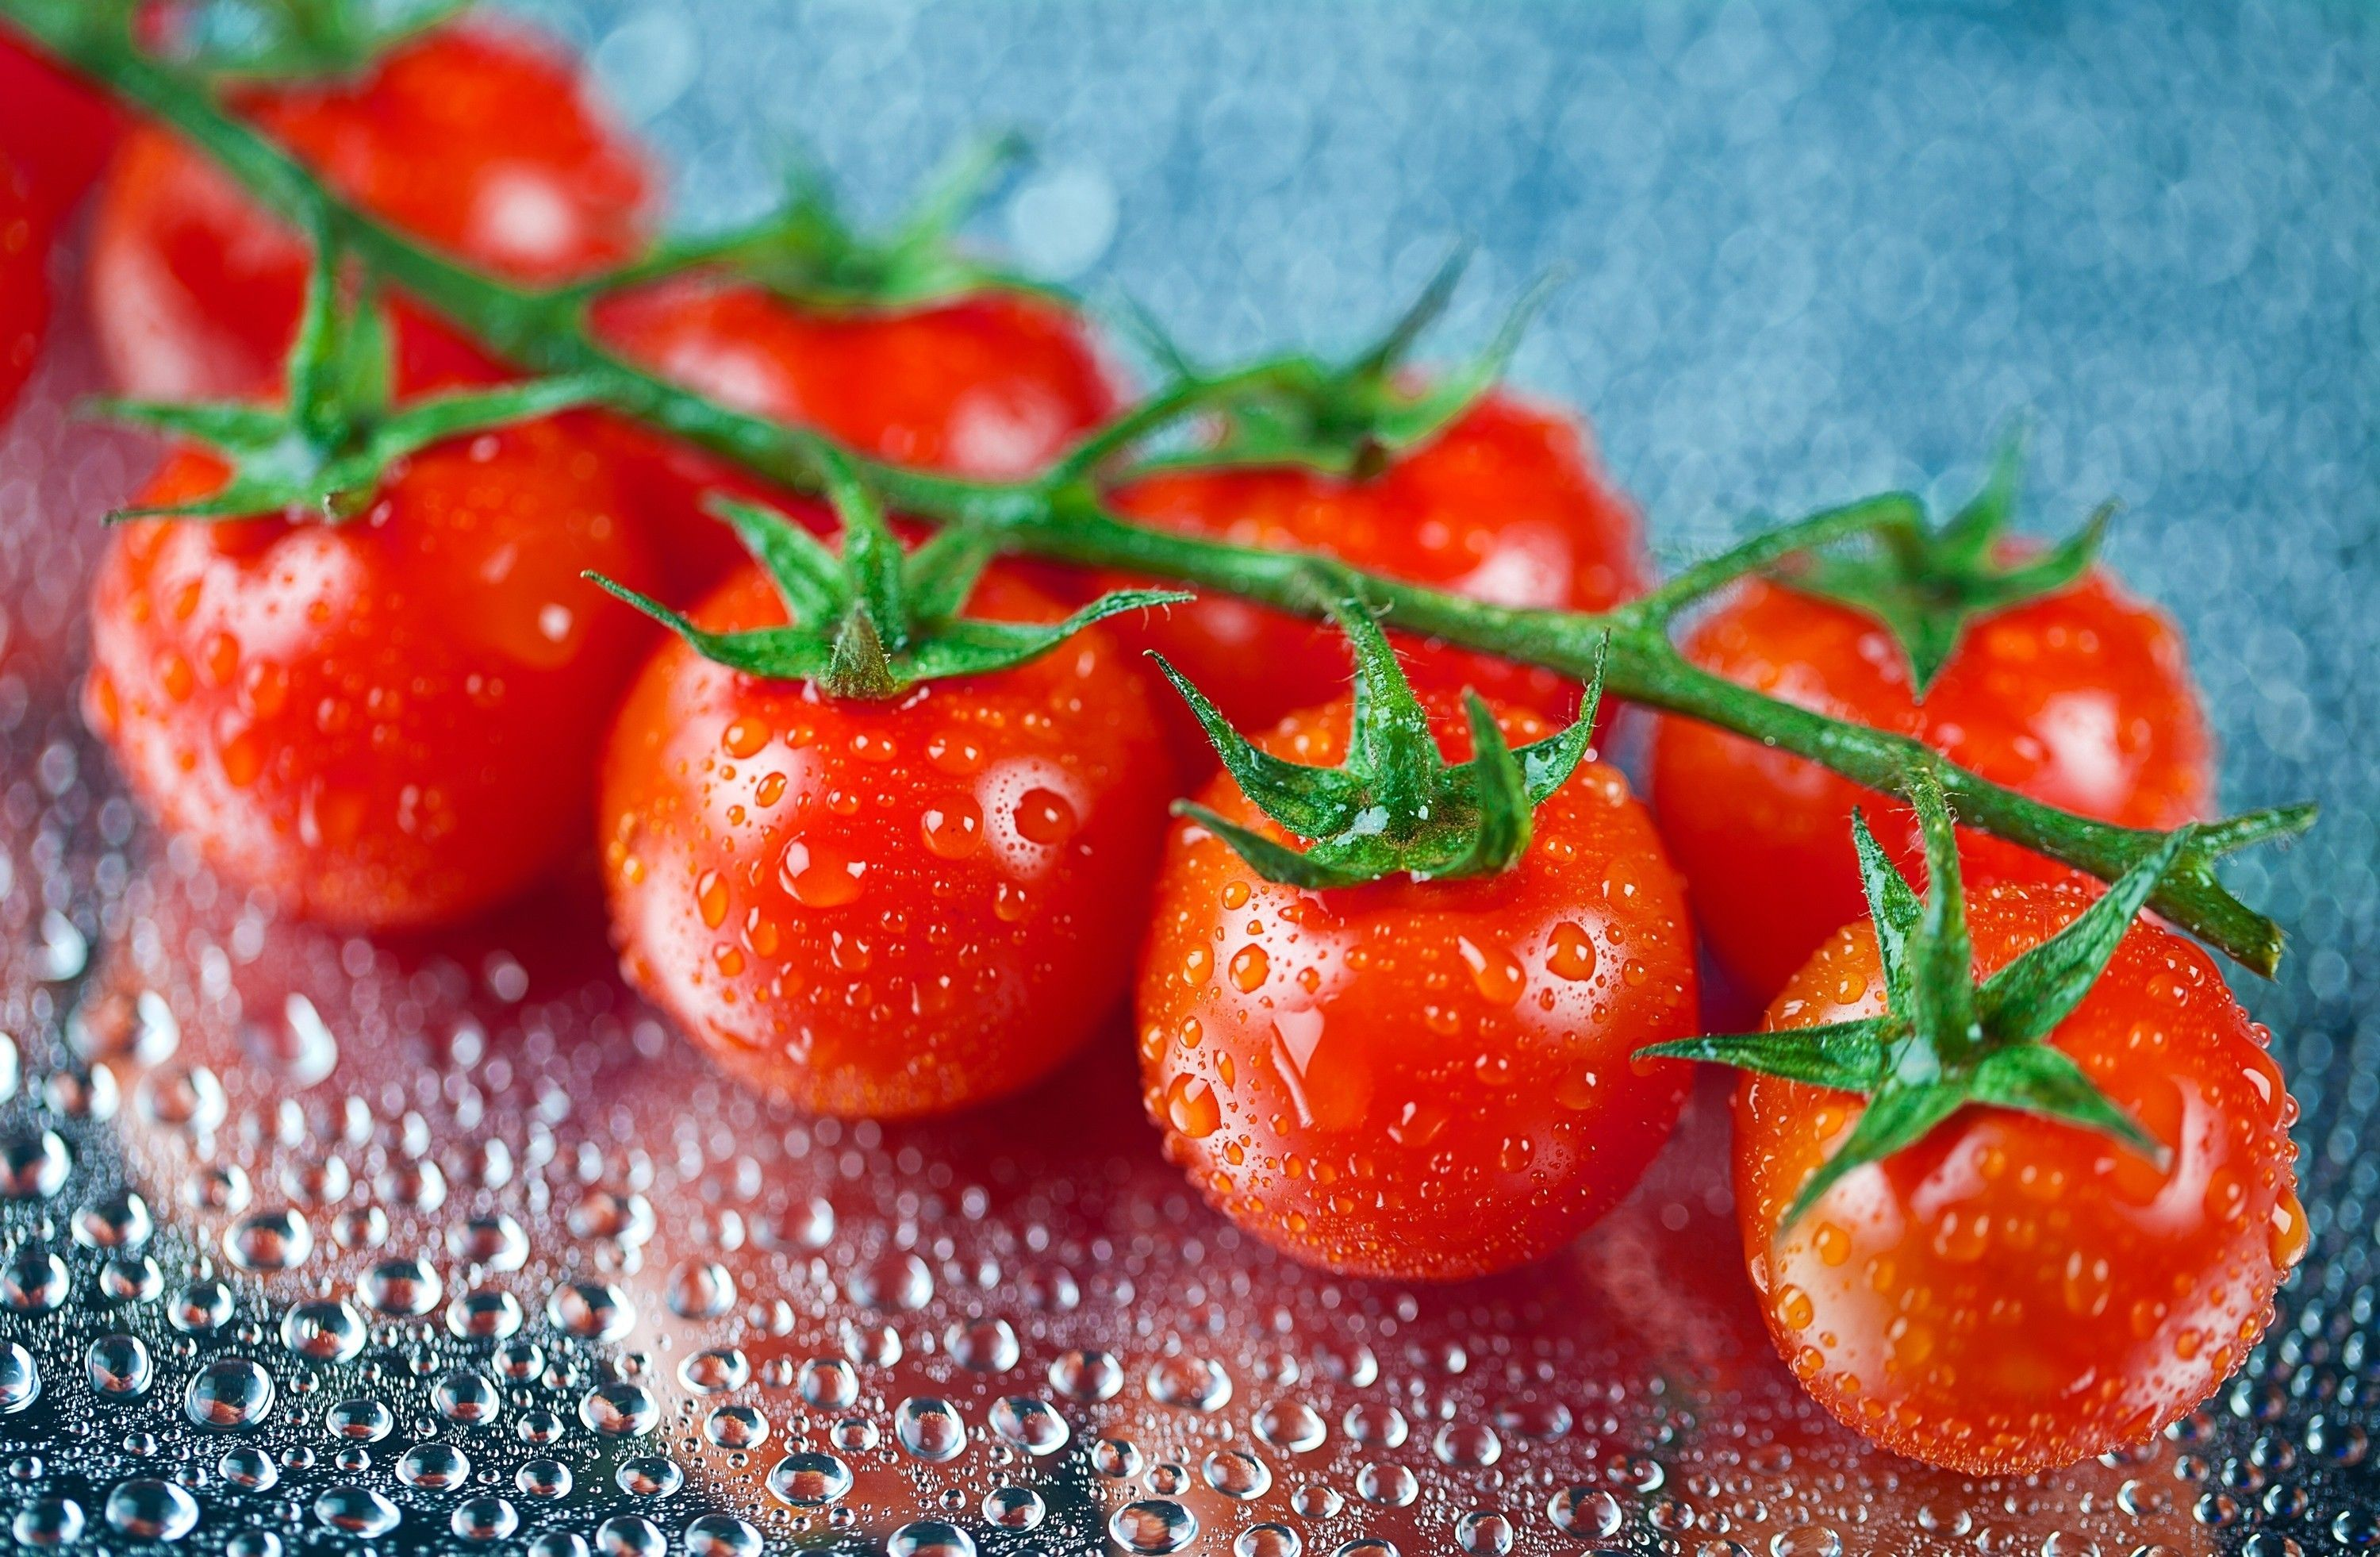 Tomatoes Wallpaper With Images Fresh Cherries Natural Anti